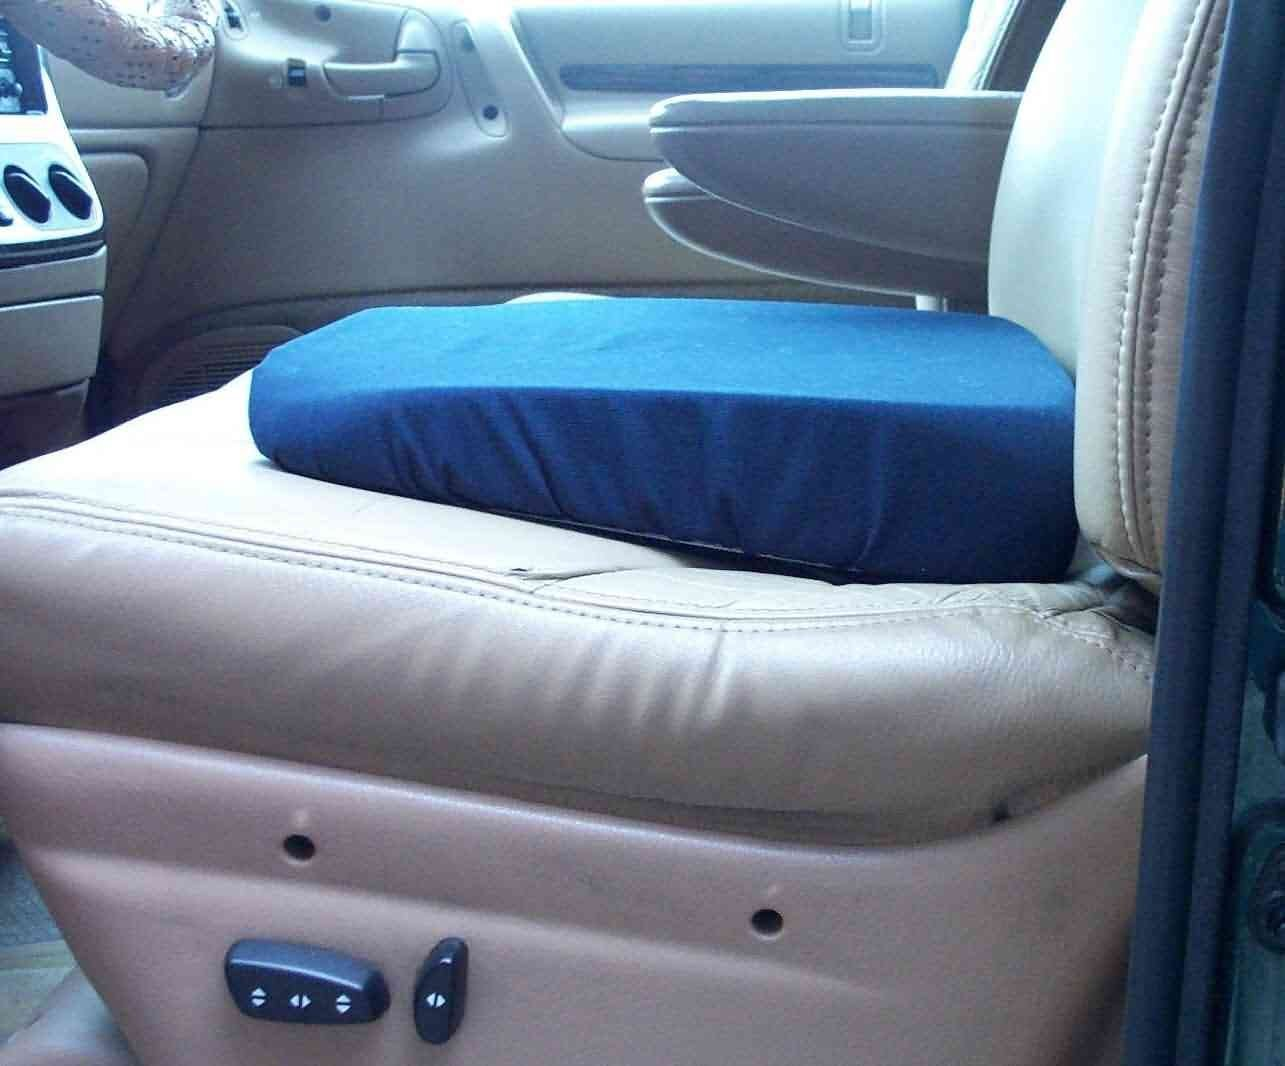 Seat Wedge Cushion 15x14 In Blue Washable Cover Extra Dense Foam By Rose From USA